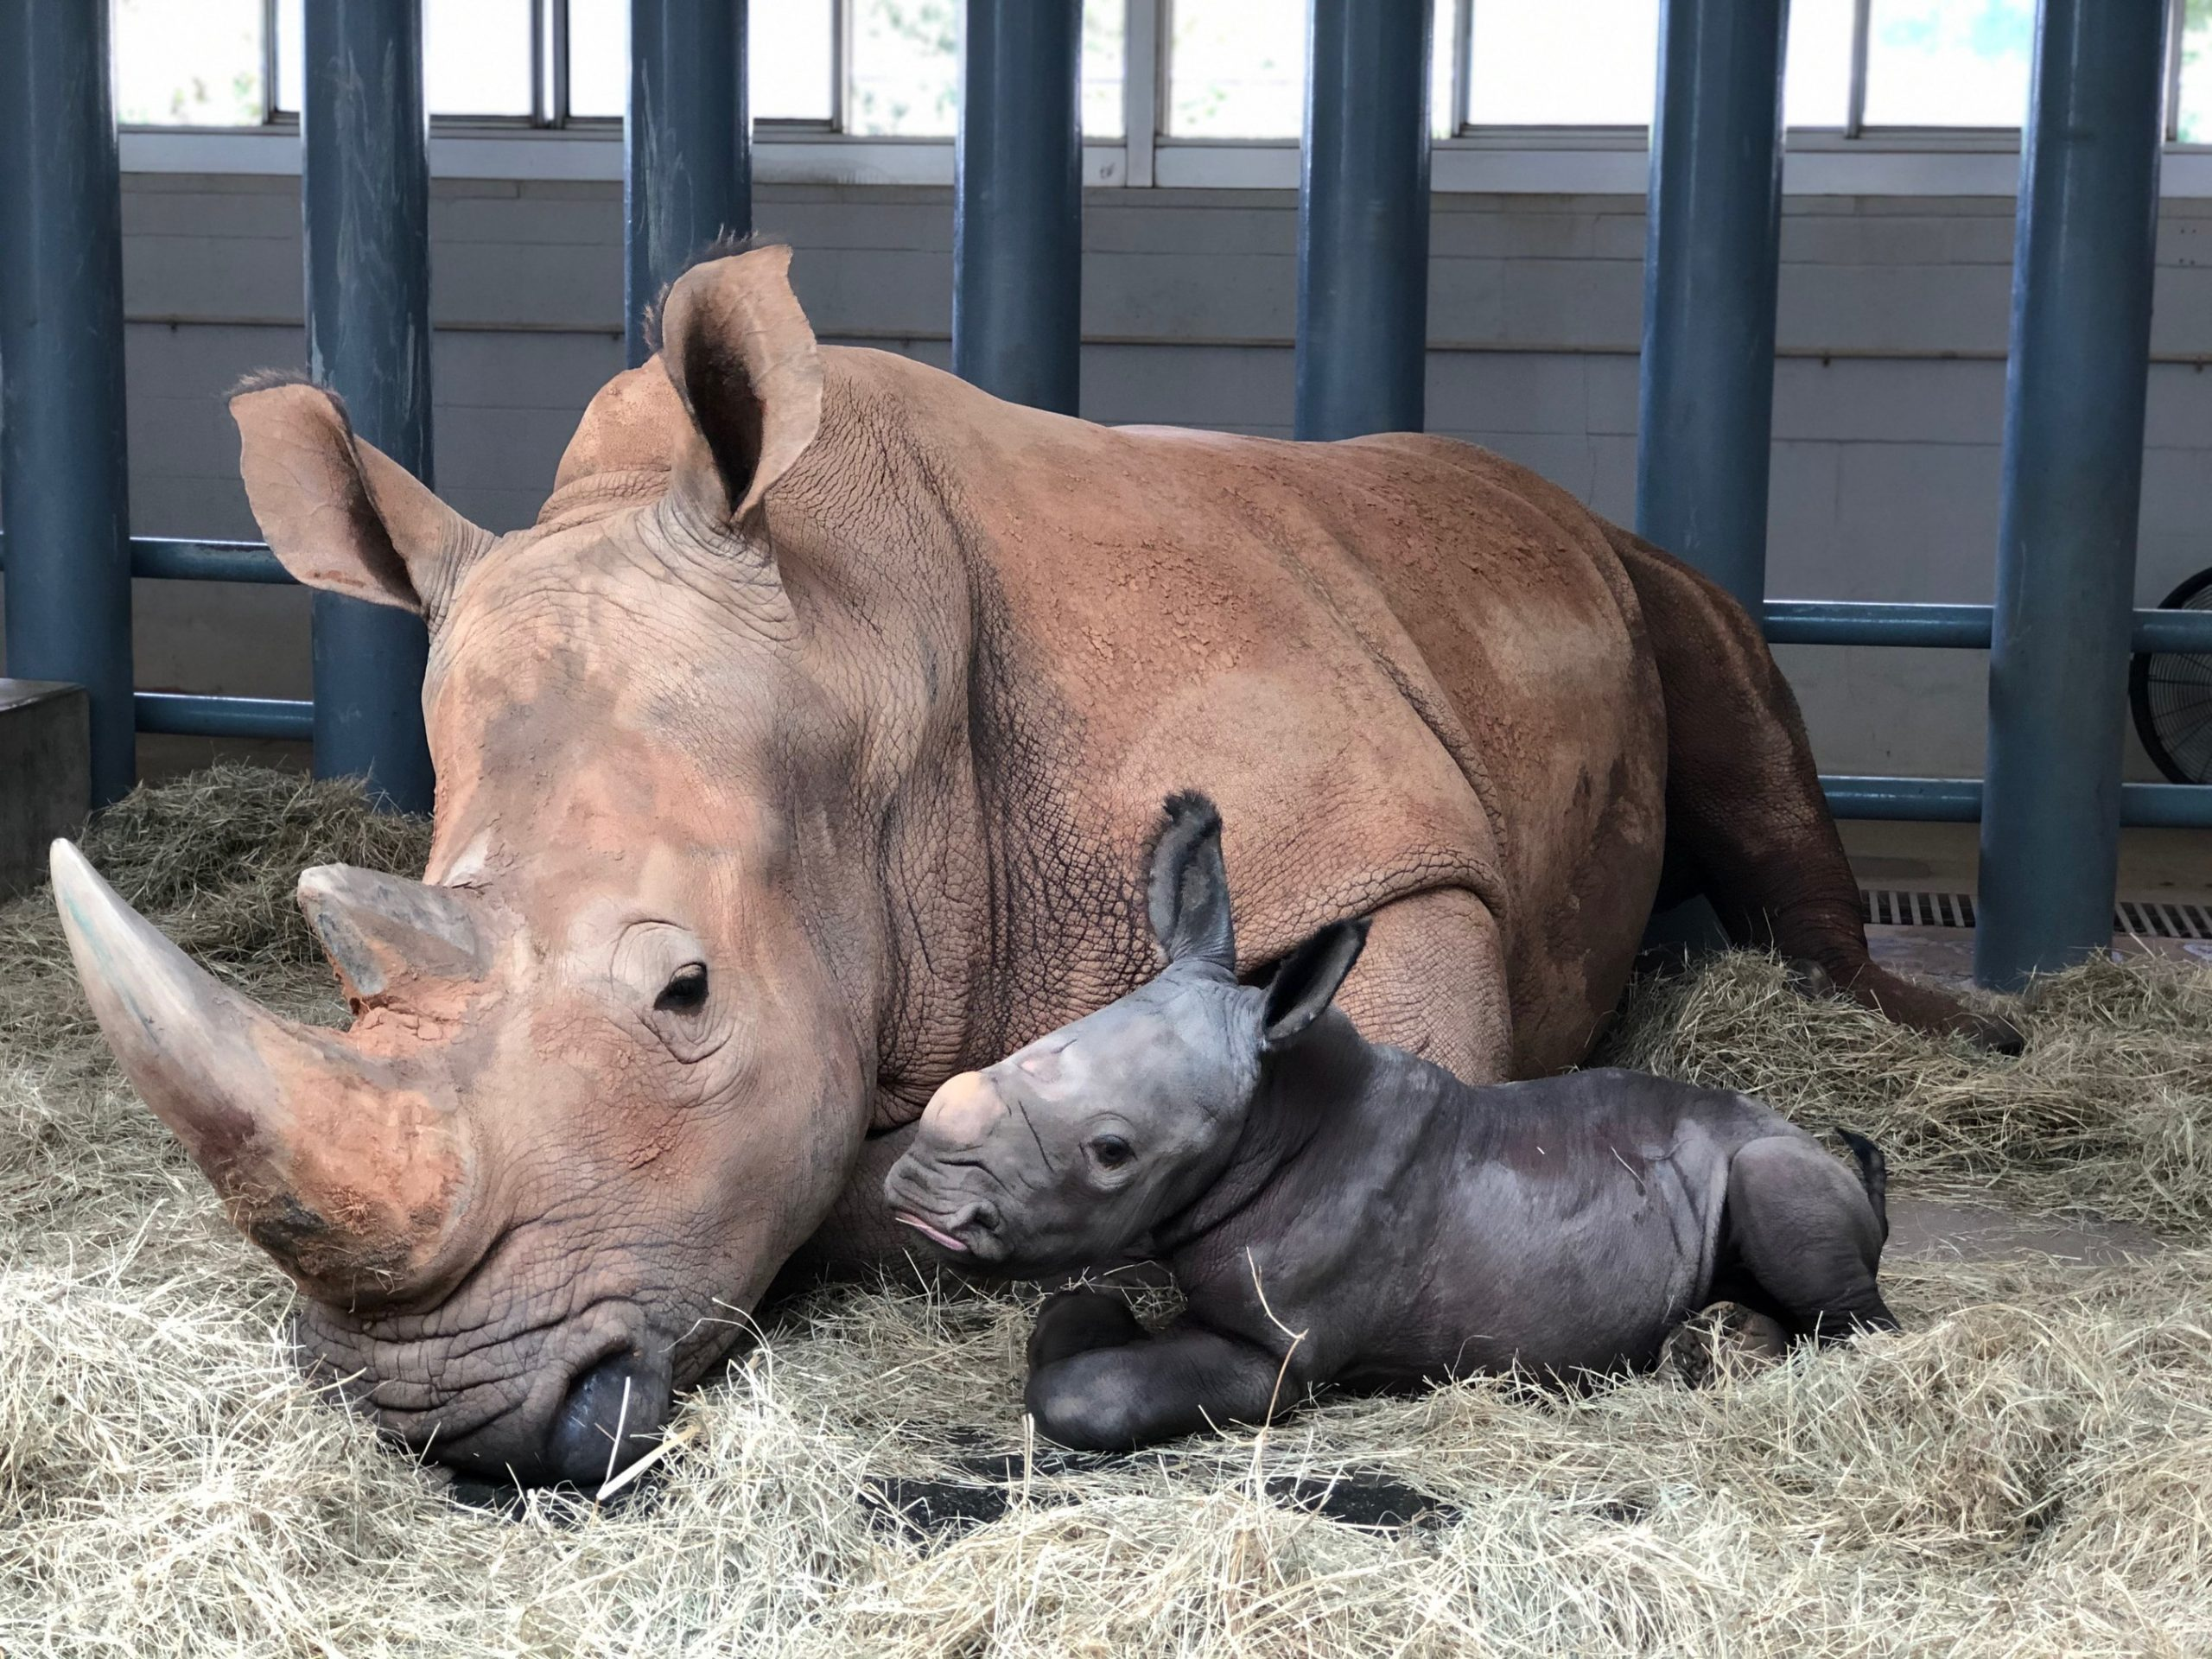 White rhinoceros Kendi gave birth to a male rhino Oct. 25, 2020, at Disney's Animal Kingdom at Walt Disney World Resort in Lake Buena Vista, Fla. The baby rhino was the result of a Species Survival Plan overseen by the Association of Zoos and Aquariums to ensure the responsible breeding of endangered species. (Disney)